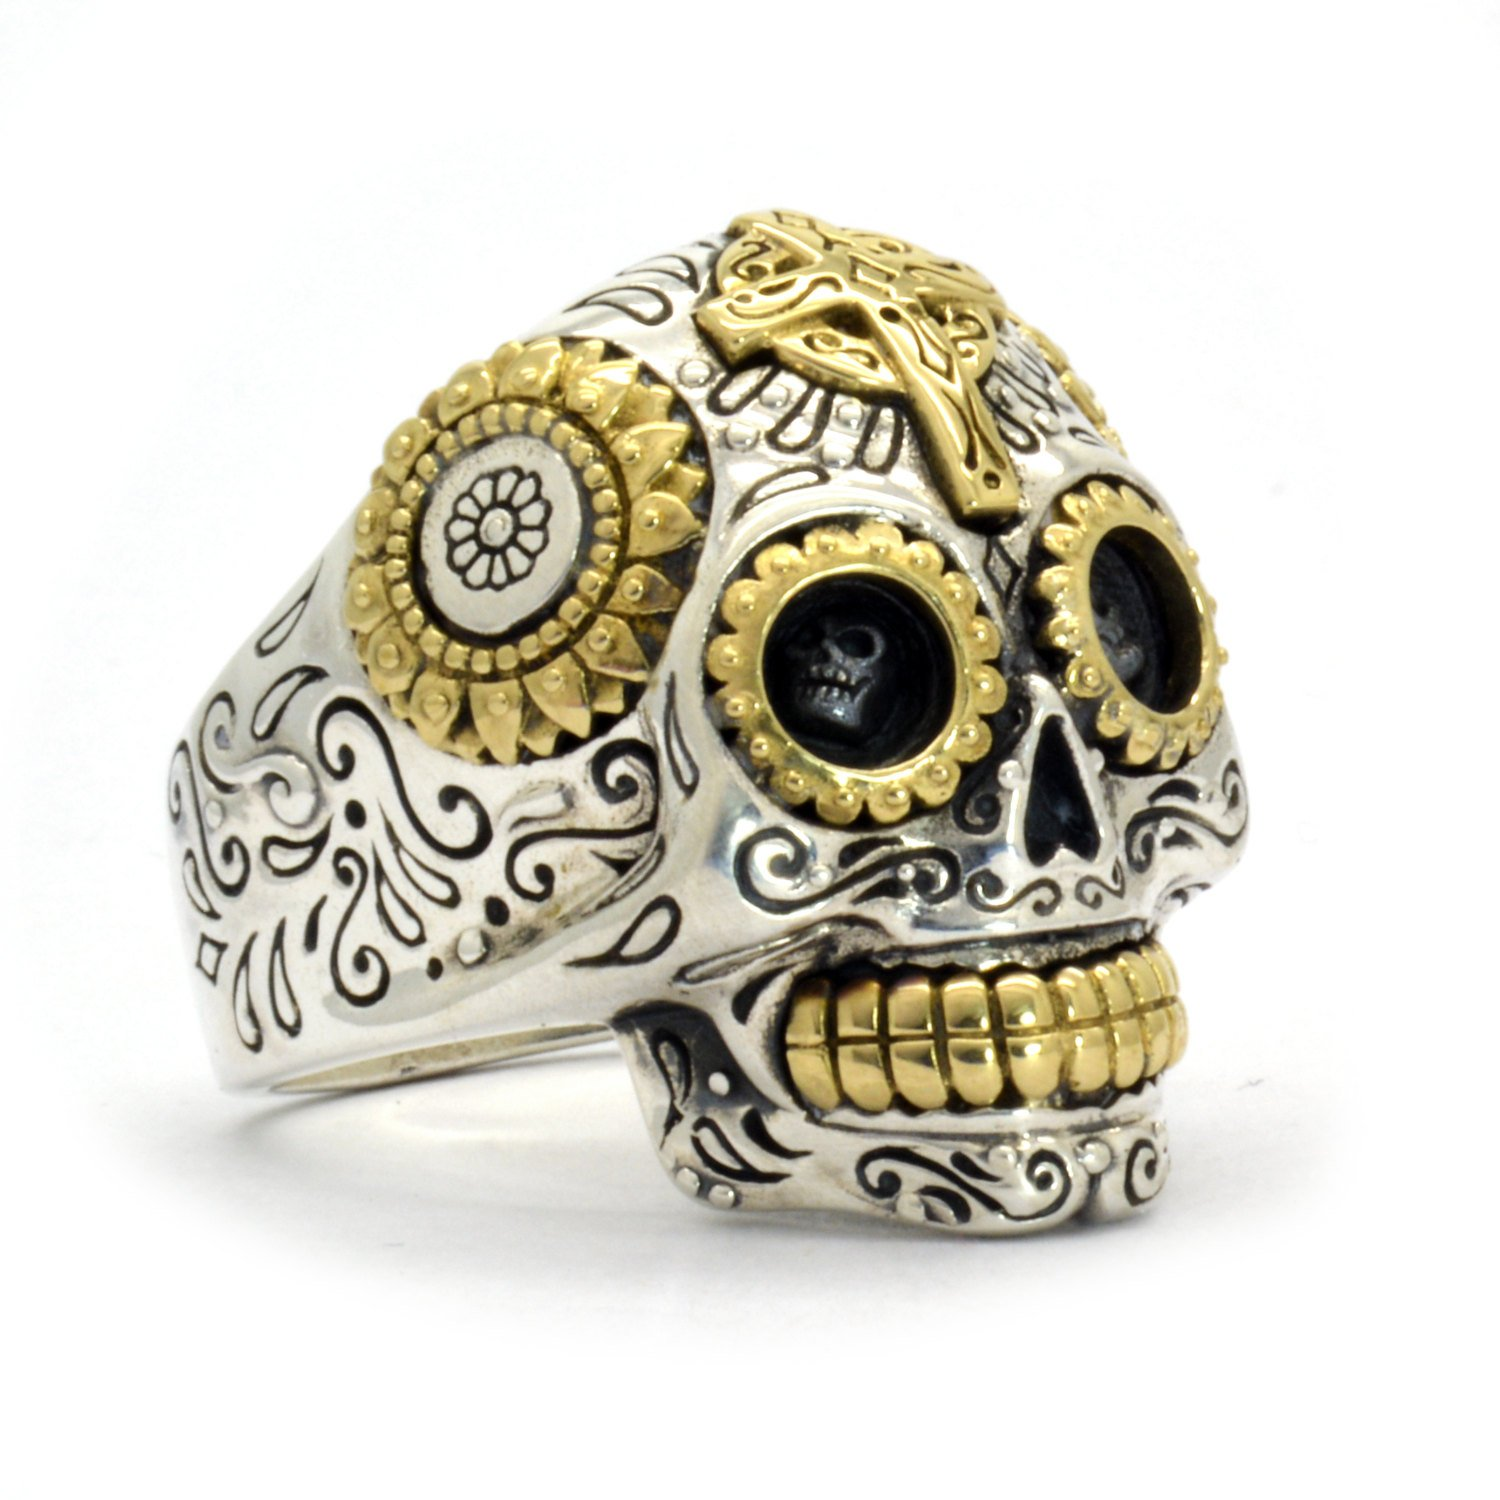 Sterling Silver Biker Sugar Skull Ring for Men - 1 Oz of Handcrafted Silver